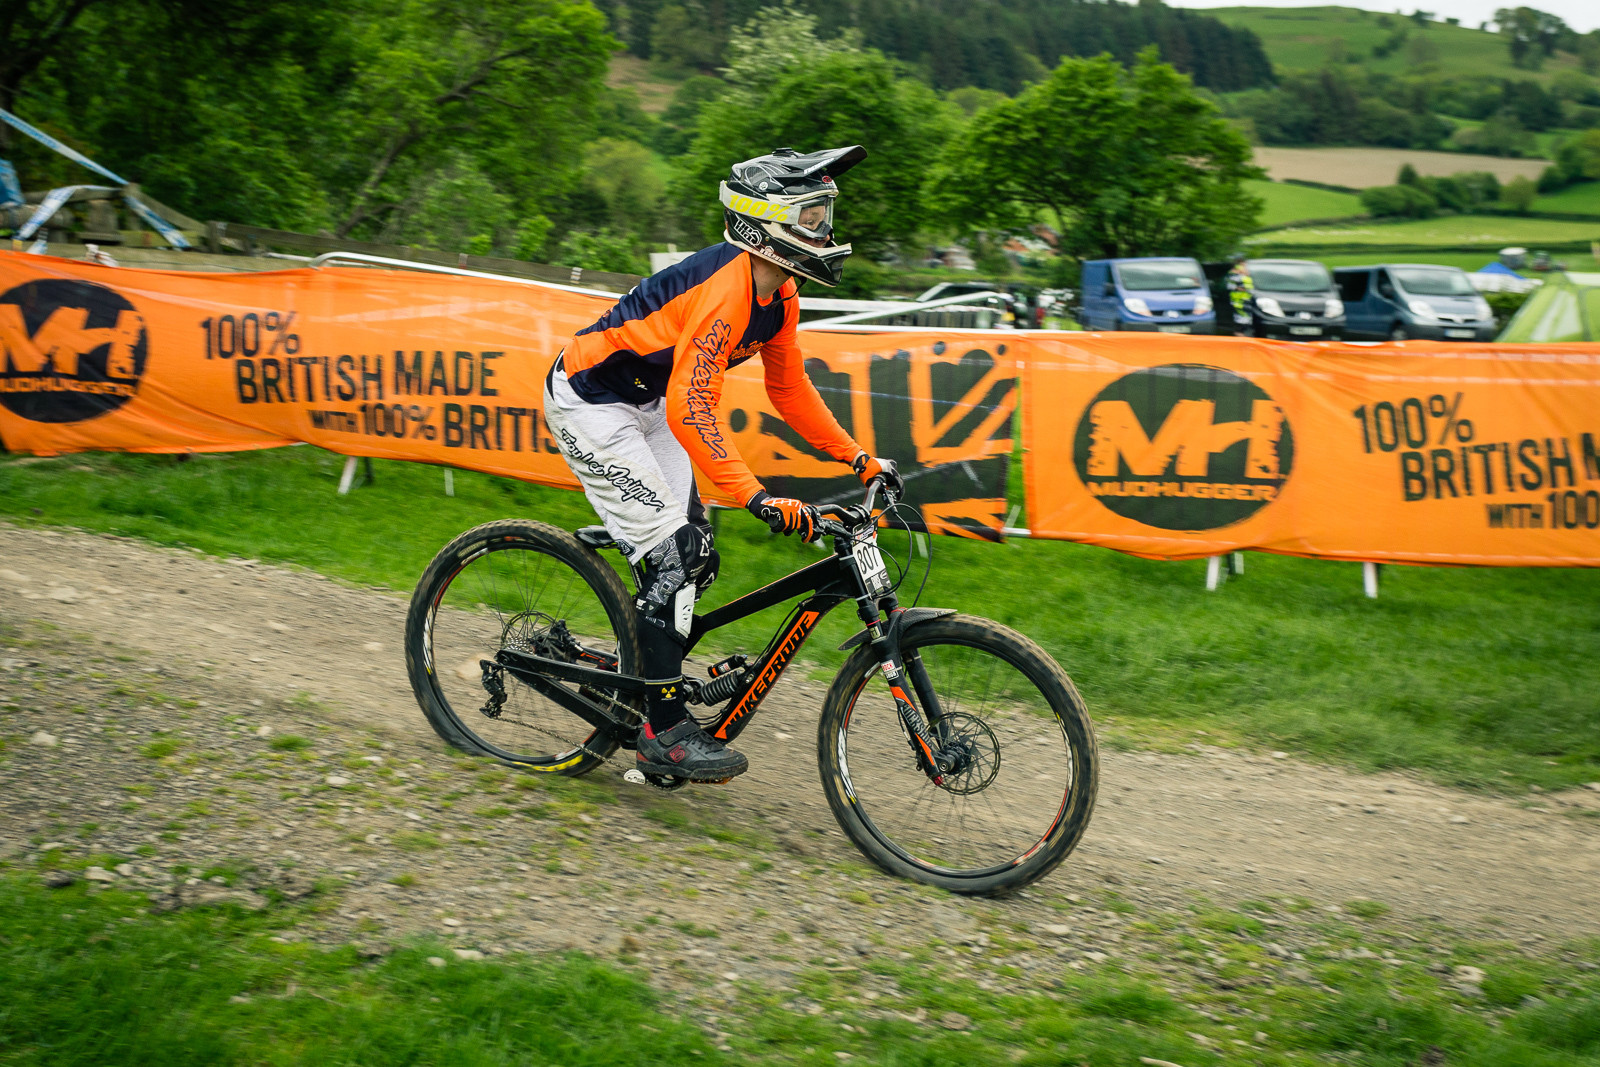 Nukeproof Pulse G-ed Out at Llangollen - G-Out Project - Llangollen BDS 2015 - Mountain Biking Pictures - Vital MTB